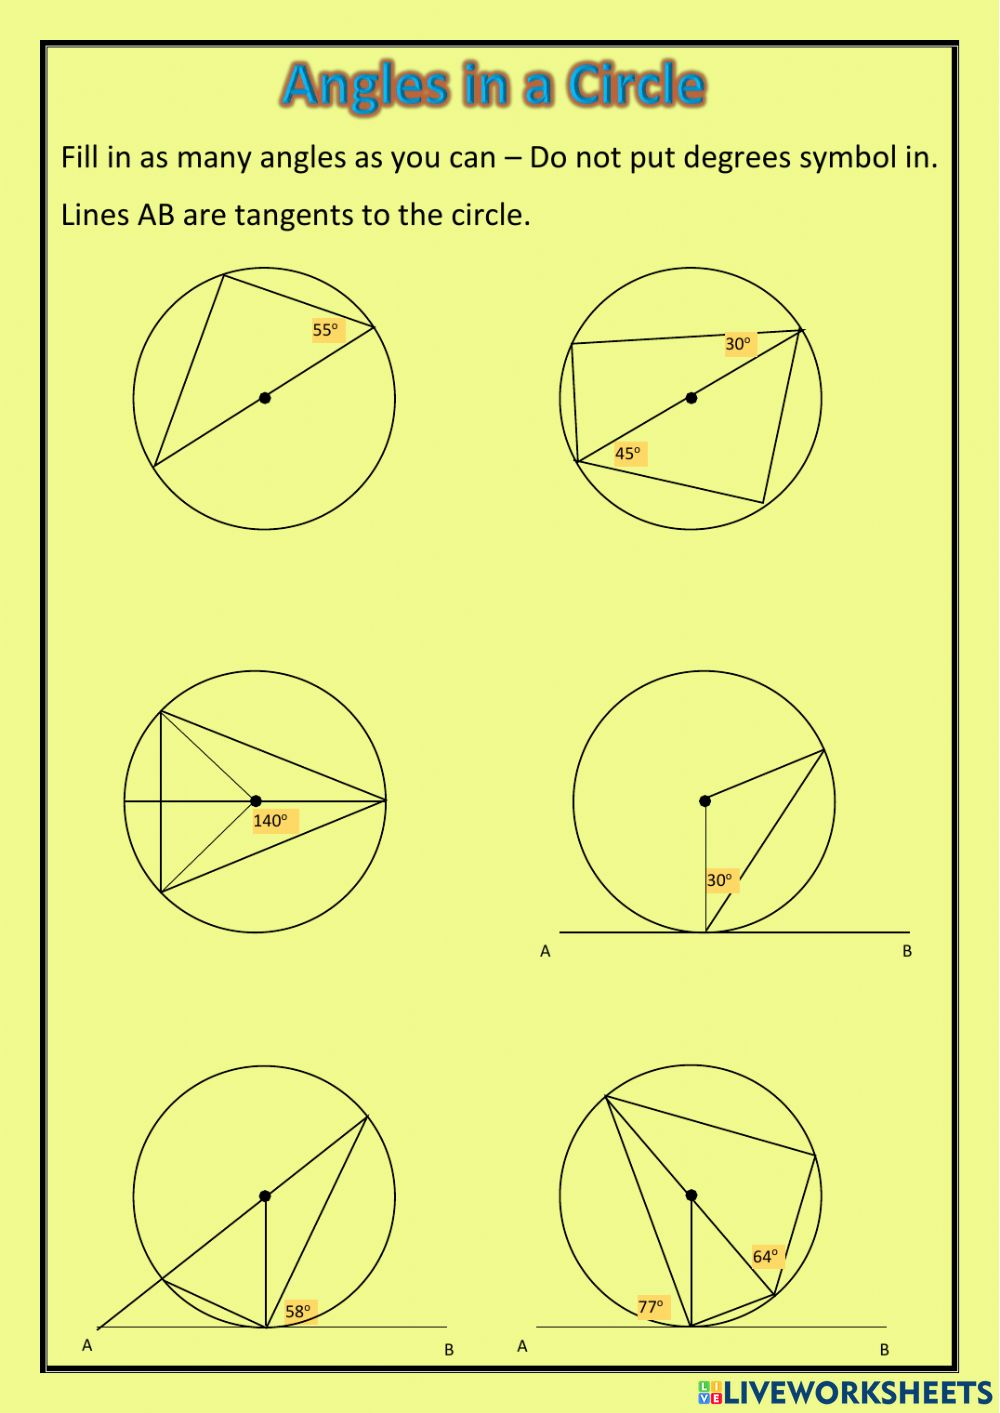 National 23 - Angles in a Circle worksheet For Angles In A Circle Worksheet